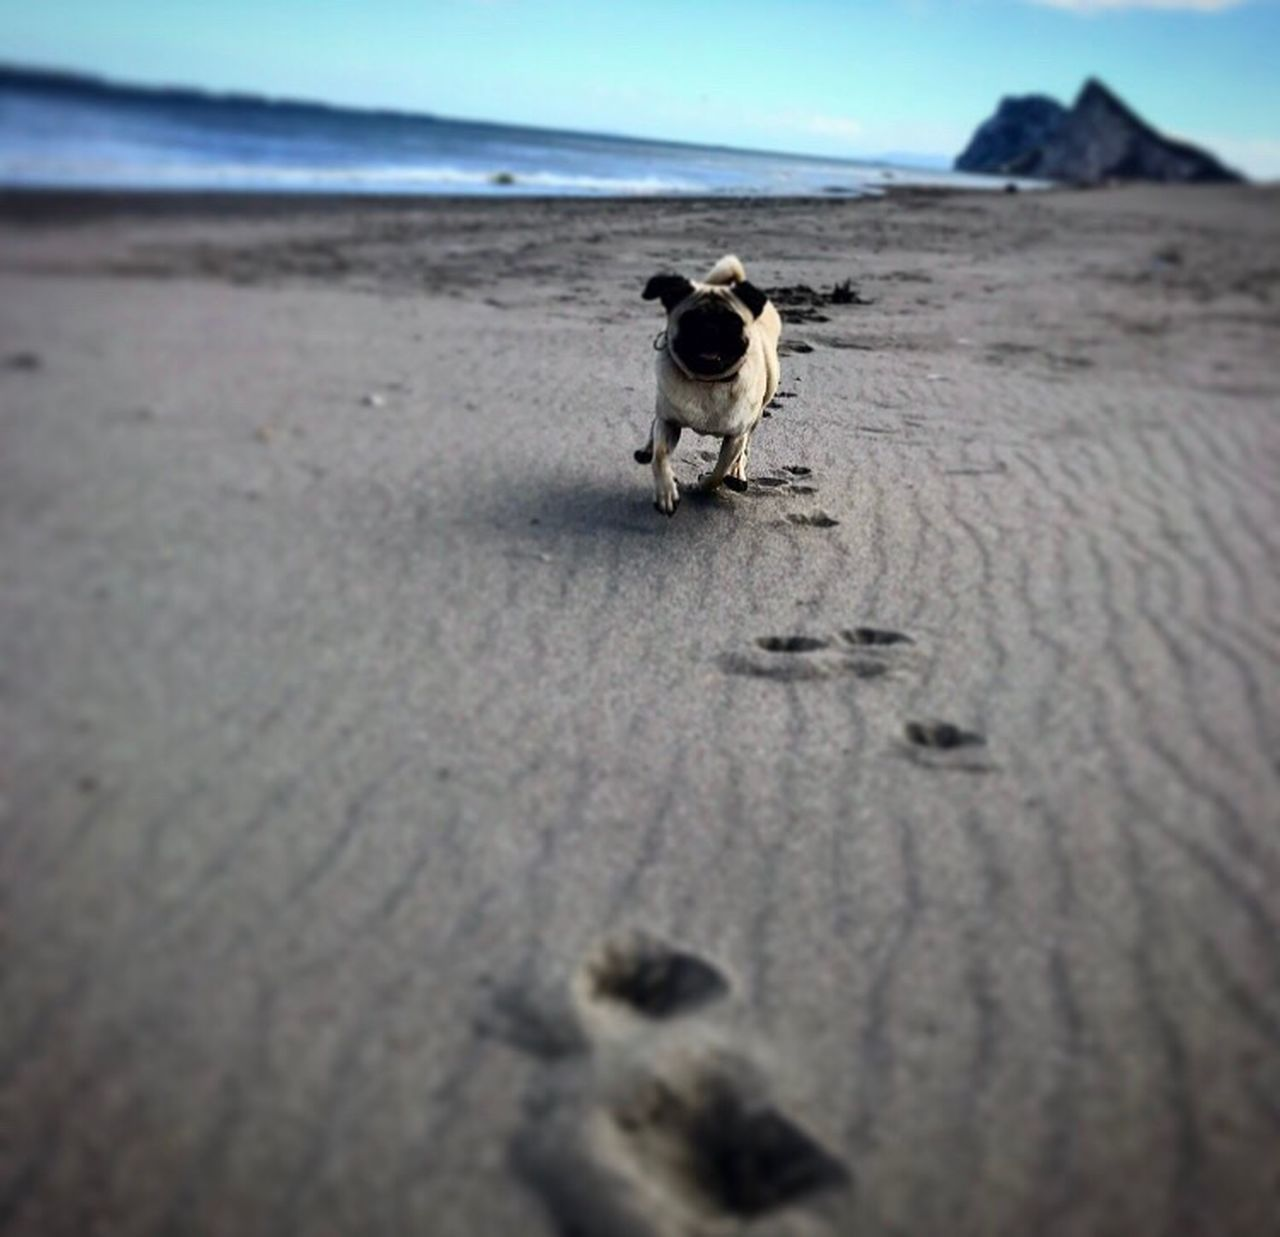 sand, beach, one animal, animal themes, dog, pets, domestic animals, sea, outdoors, day, paw print, nature, no people, mammal, full length, sky, water